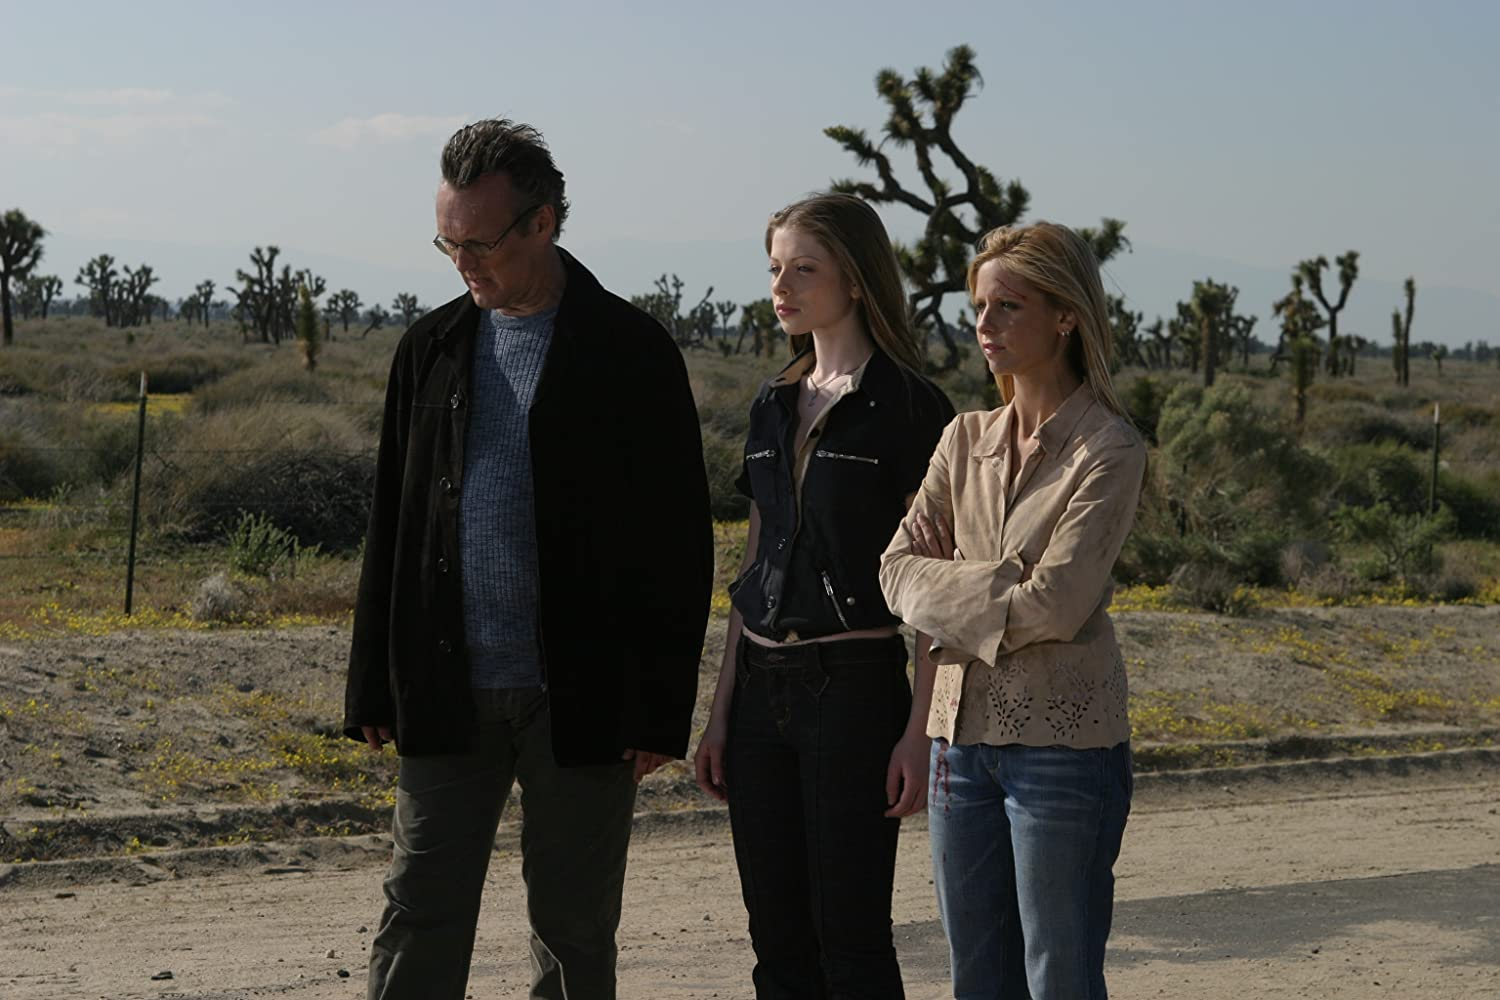 Sarah Michelle Gellar, Michelle Trachtenberg, and Anthony Head in Buffy the Vampire Slayer (1997). L-R Giles, Dawn, and Buffy stand on a dusty deserted highway, looking off to the left of the frame. They are all looking rather worse for wear – Buffy has a large red cut on her forehead and blood on her blue jeans, but she stands with her arms folded, resolute. Giles, the middle aged man with thinning grey hair and a black overcoat, looks down at the ground, meanwhile Dawn, a slim white girl with light brown hair, holds her head up high.